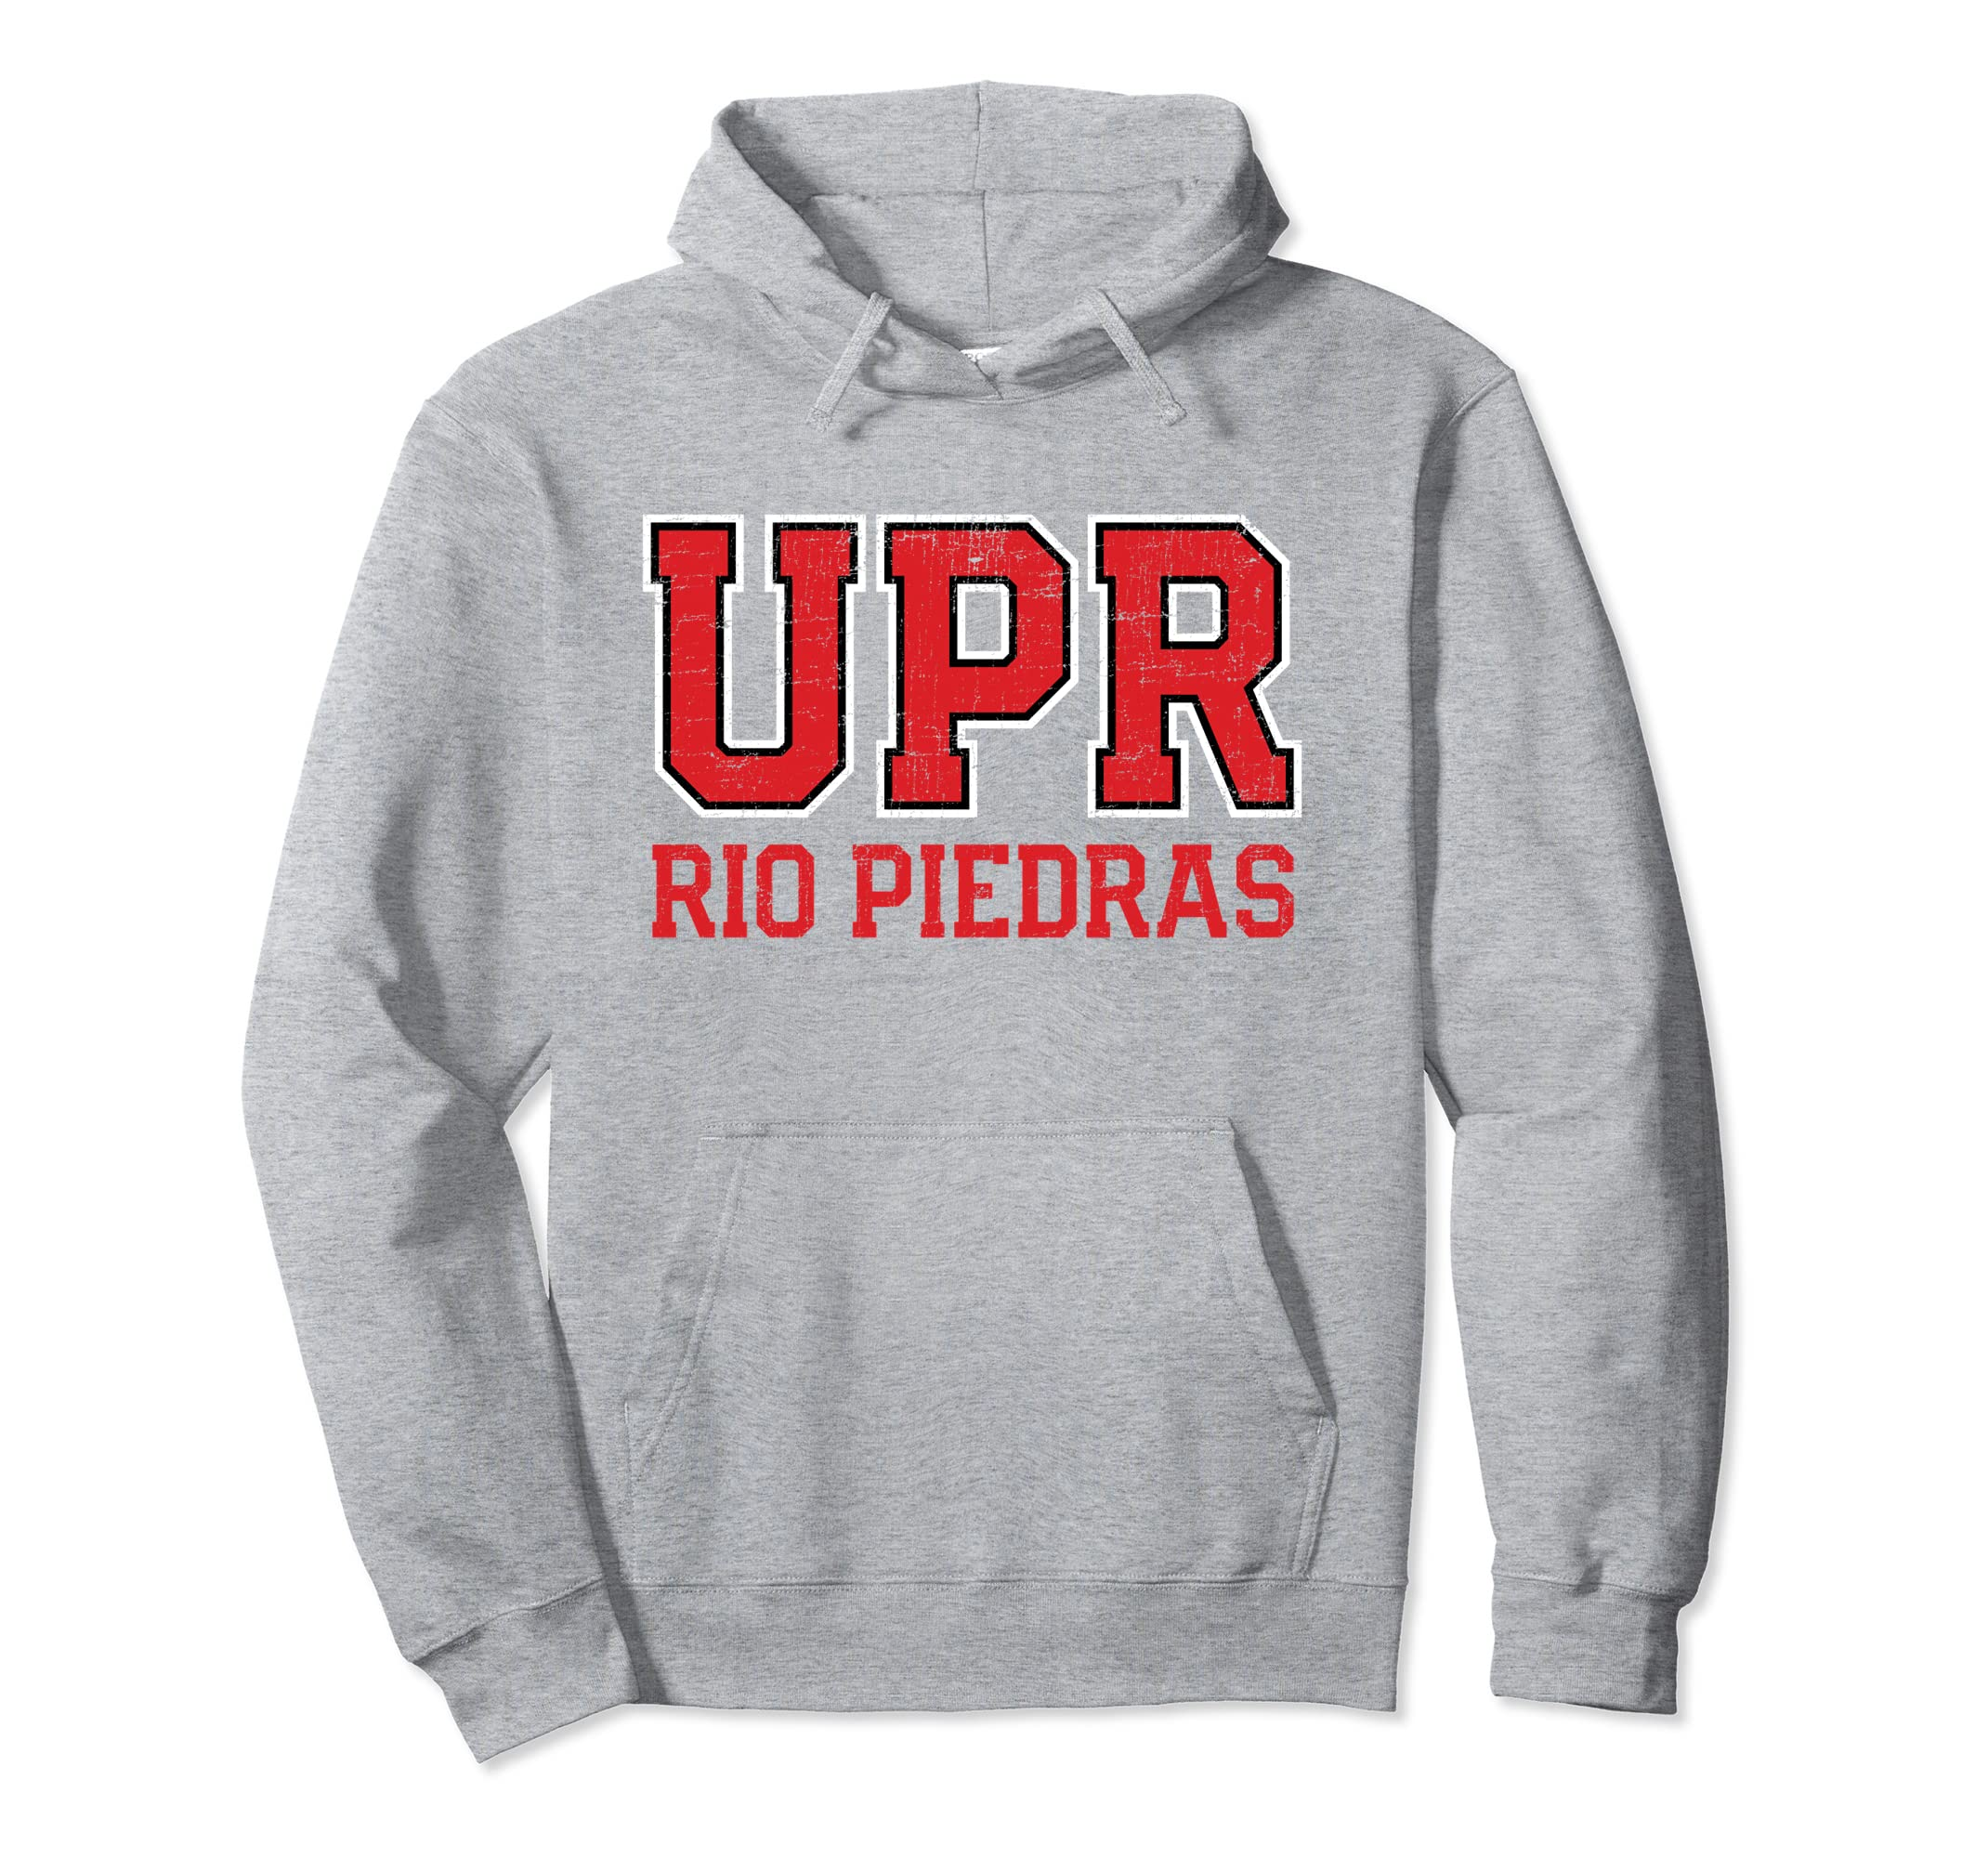 Amazon.com: Universidad de Puerto Rico Rio Piedras IUPI UPR Hoodie: Clothing